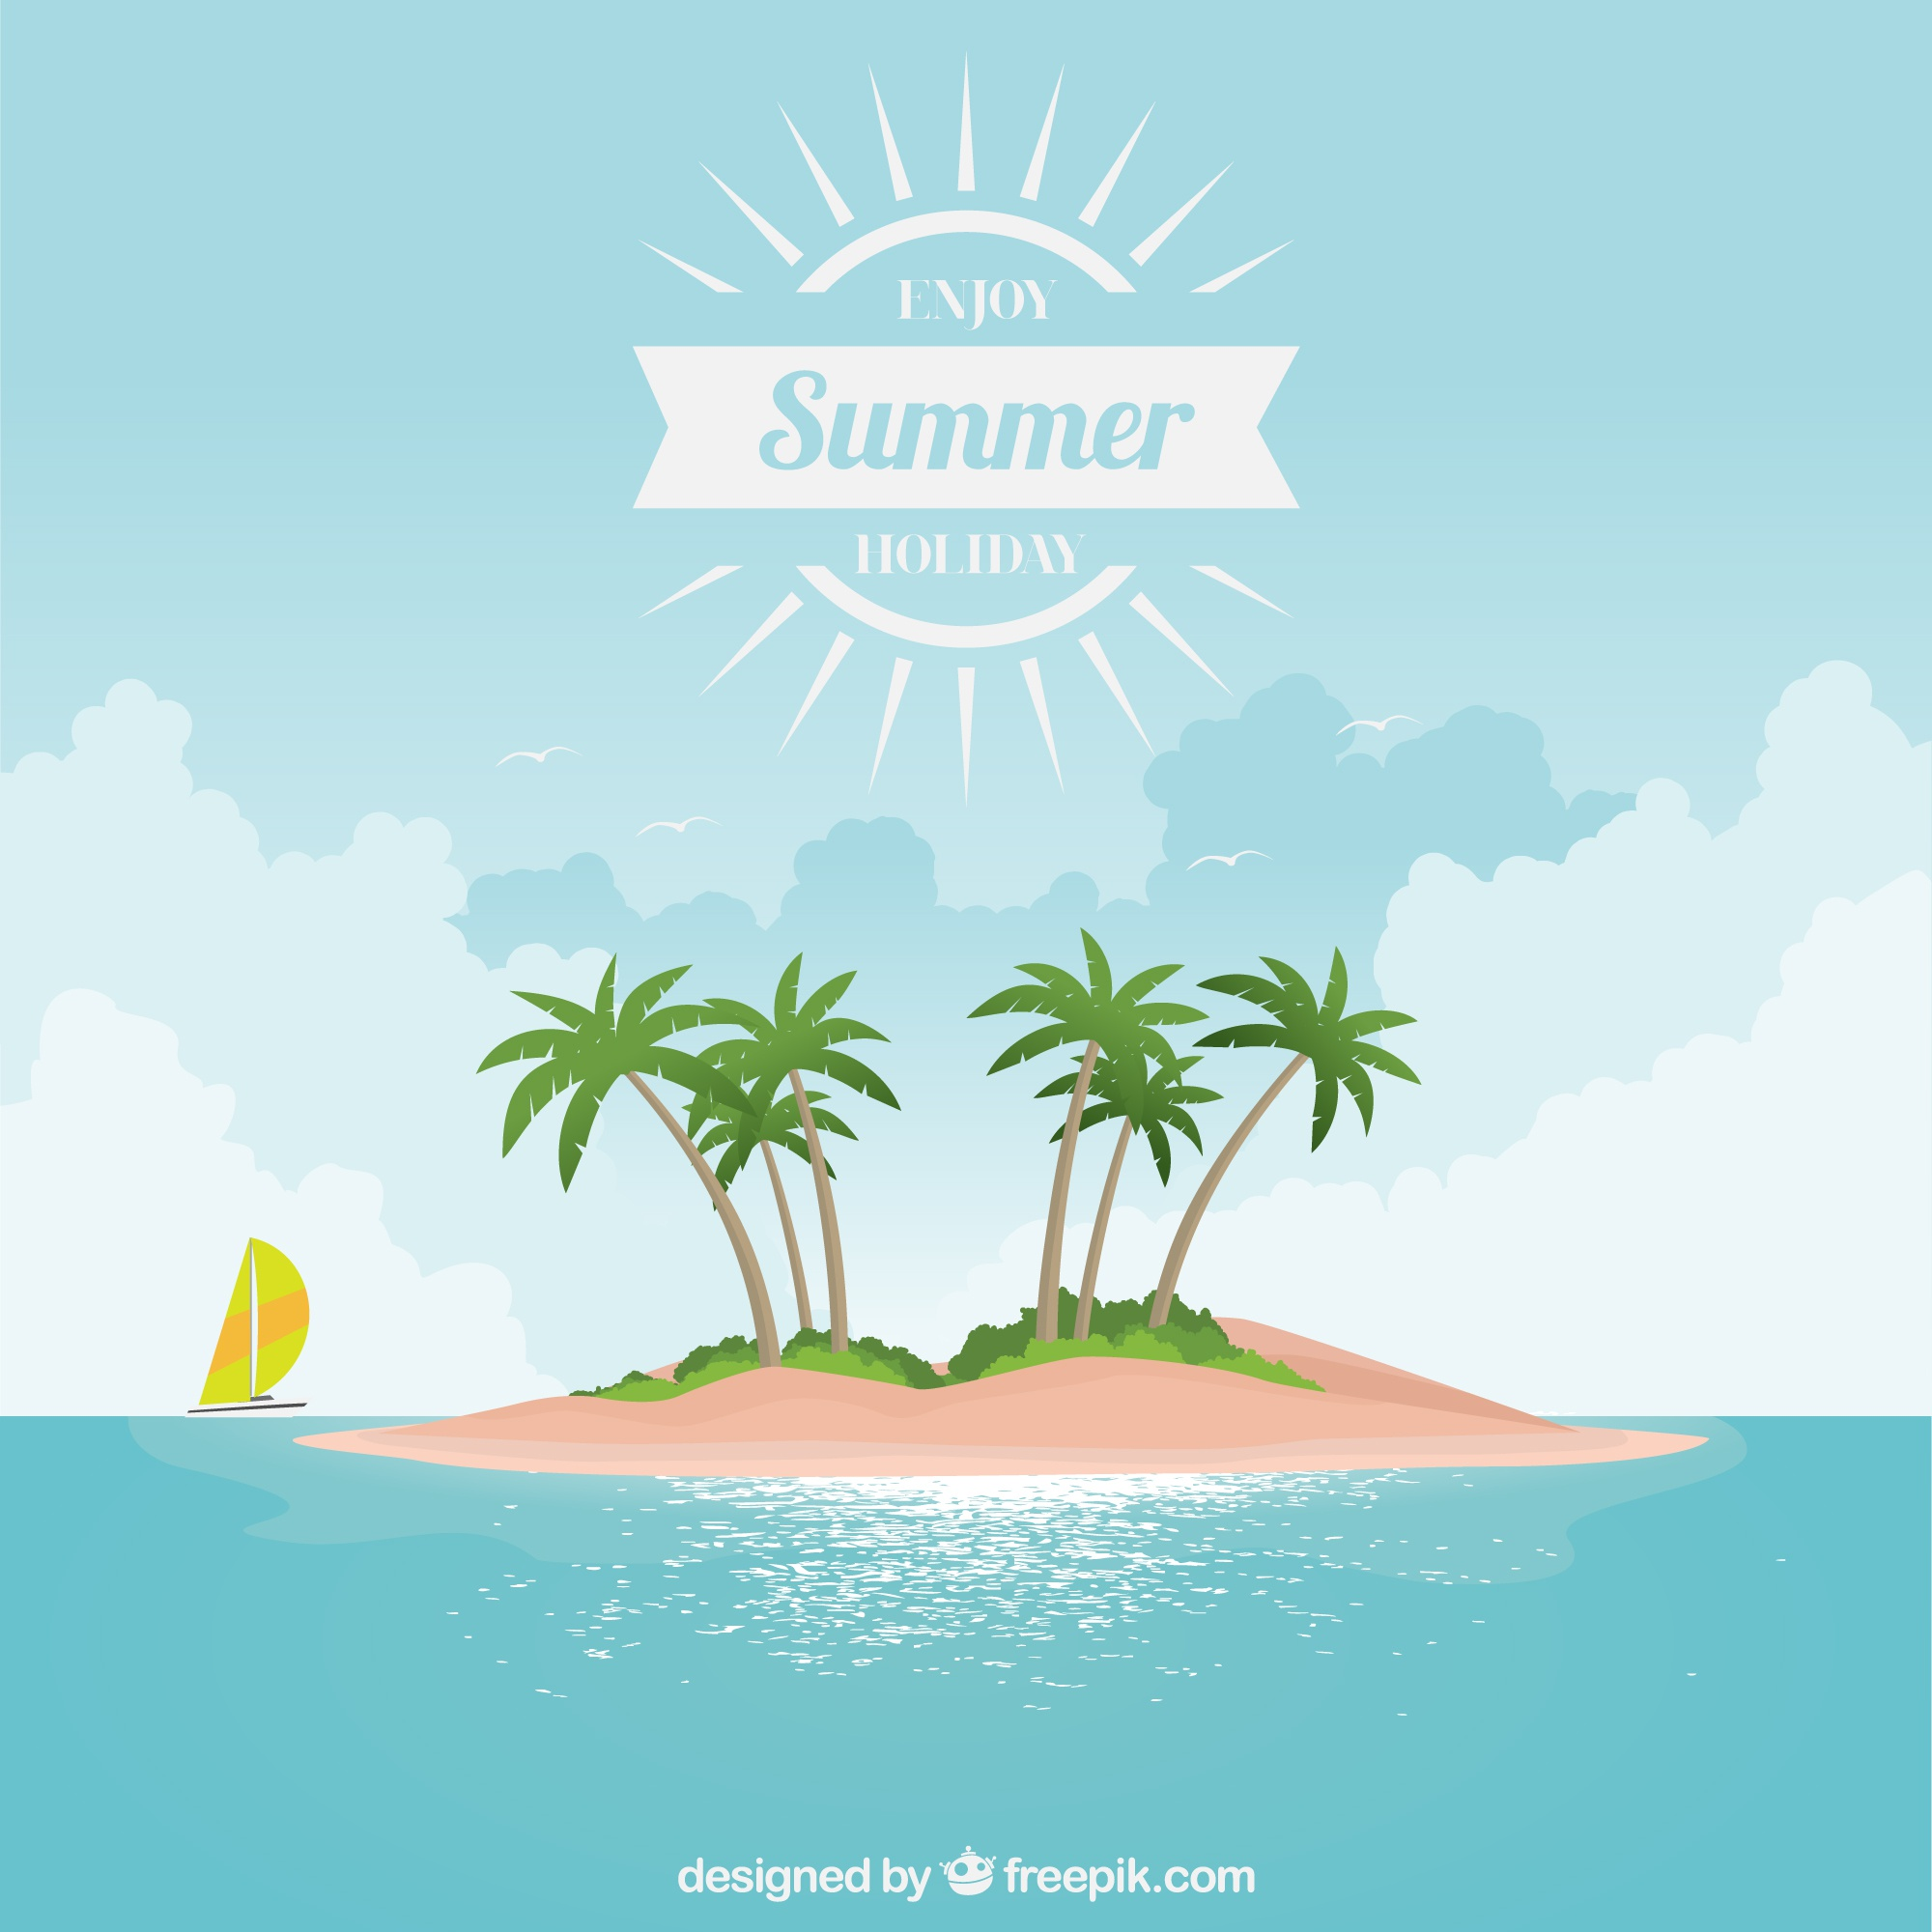 Enjoy best summer holidays